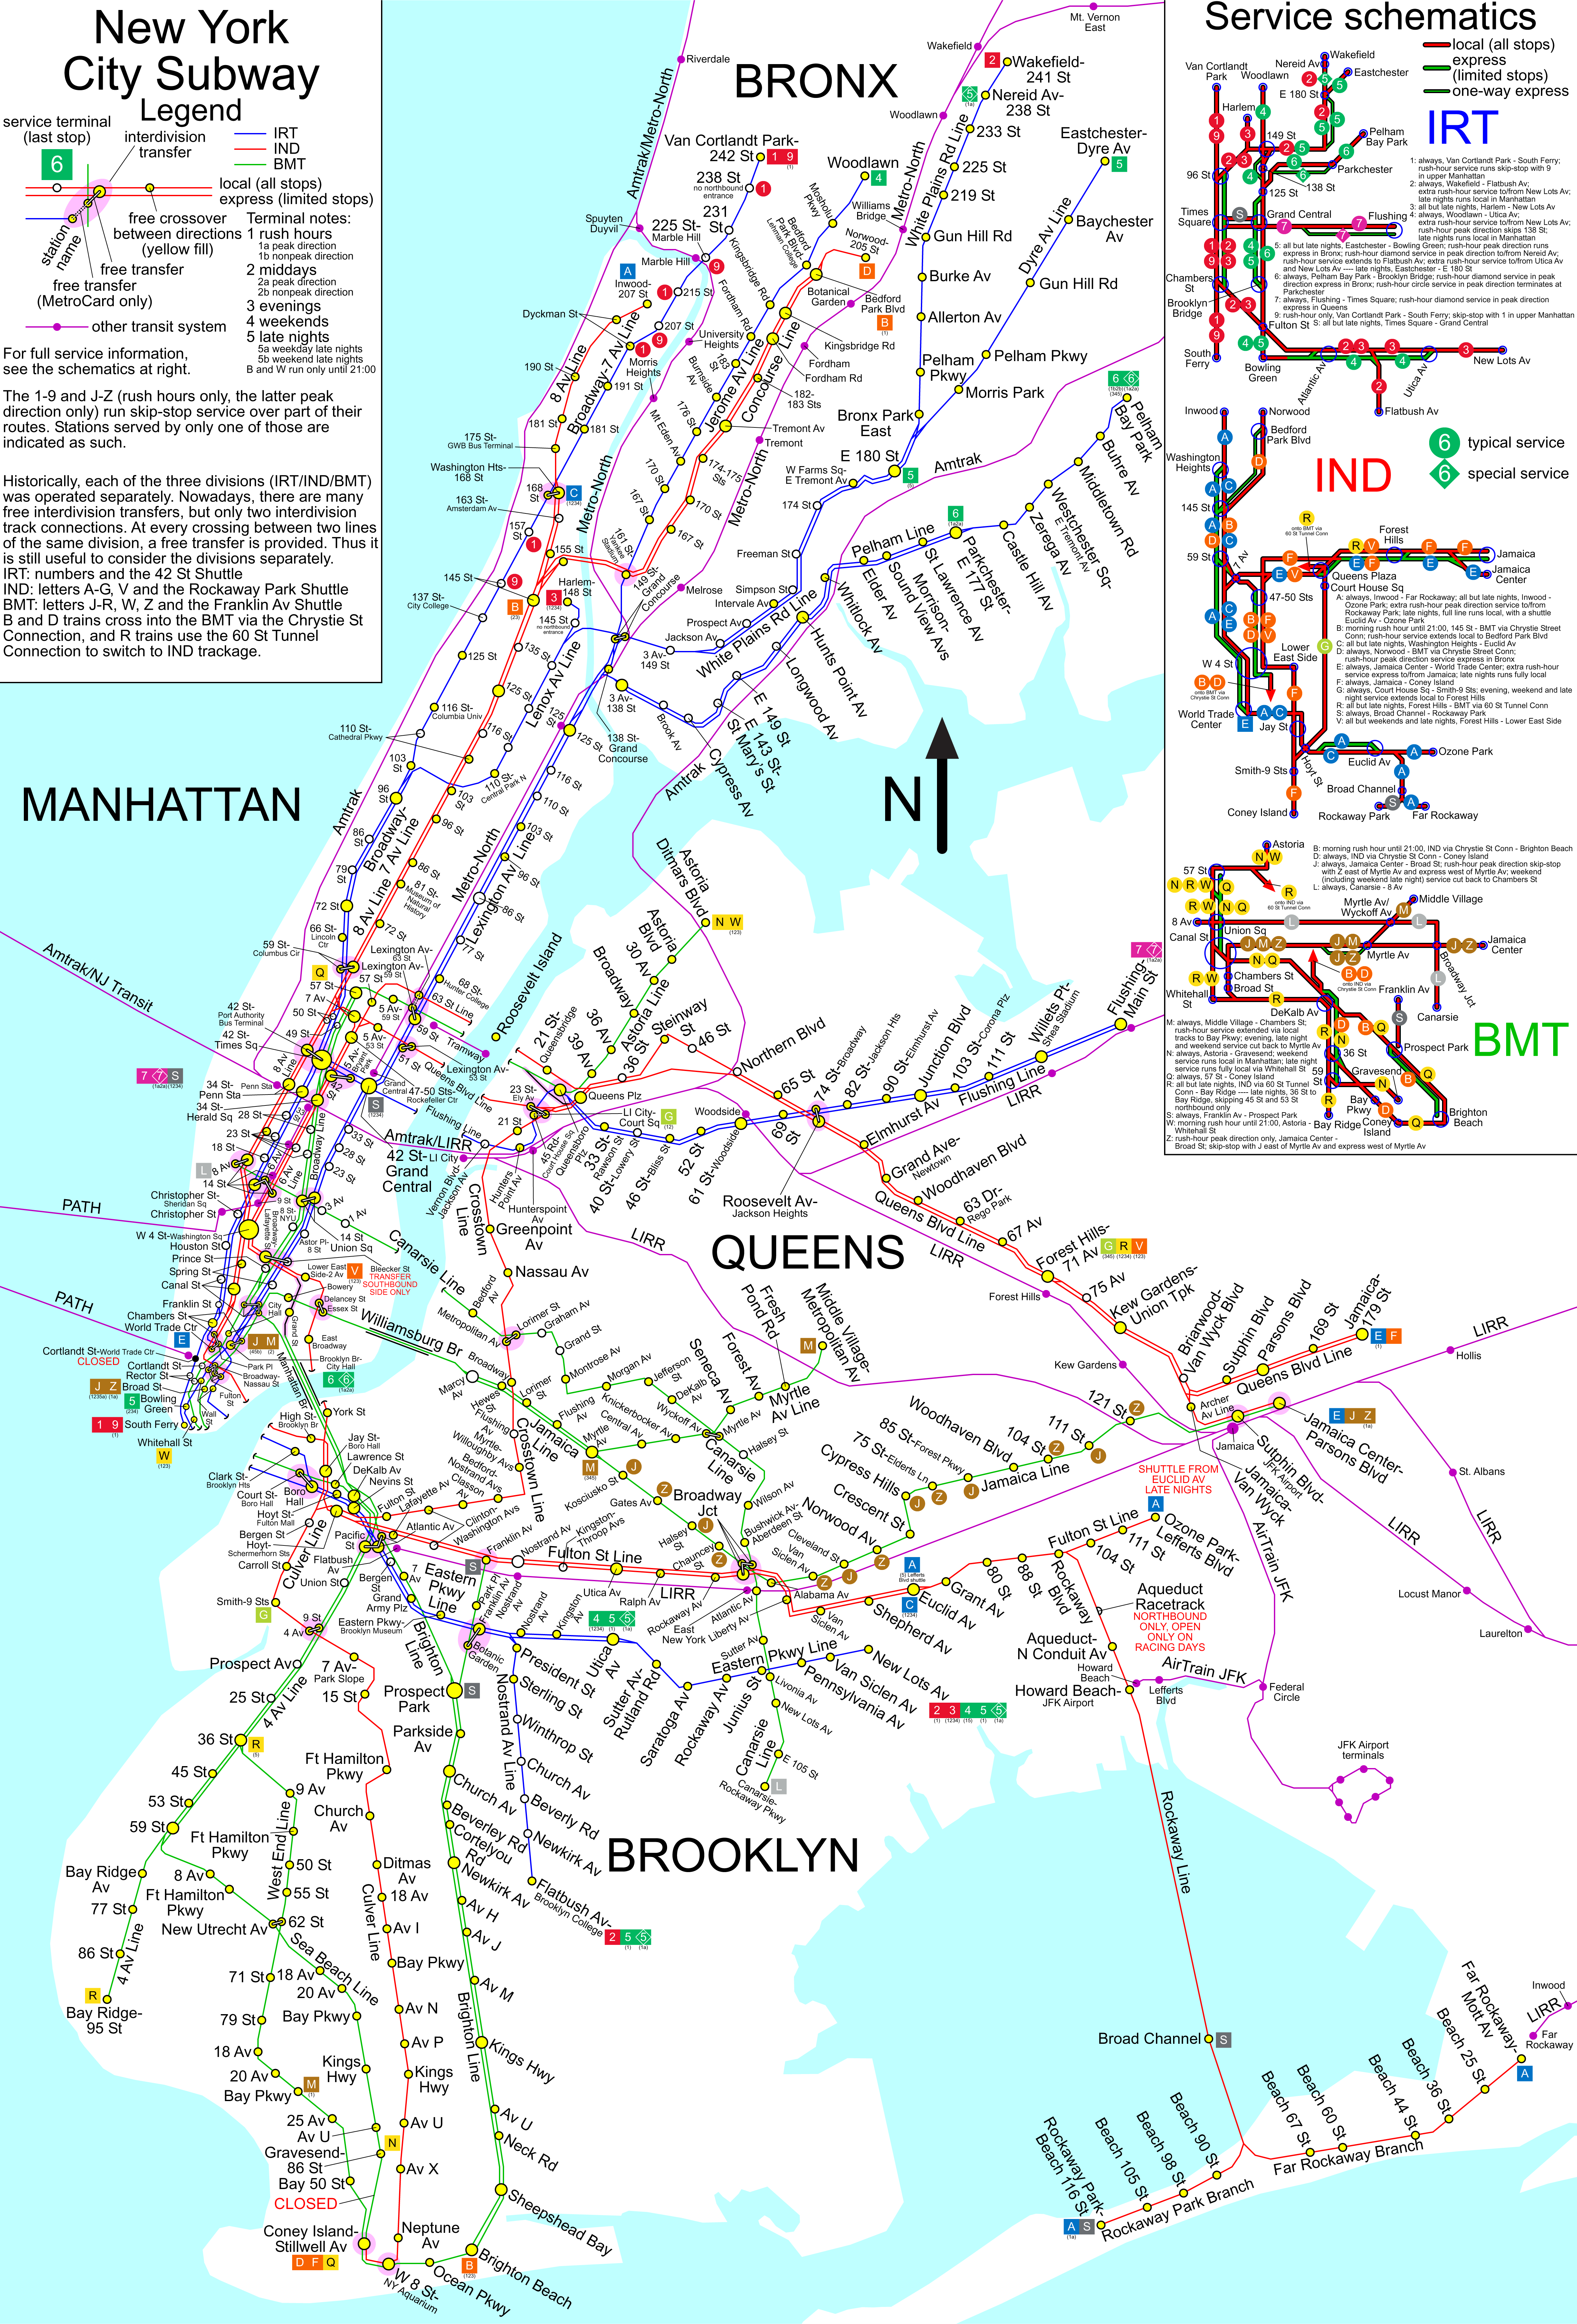 NYC Subway Map unofficial - New York NY • mappery